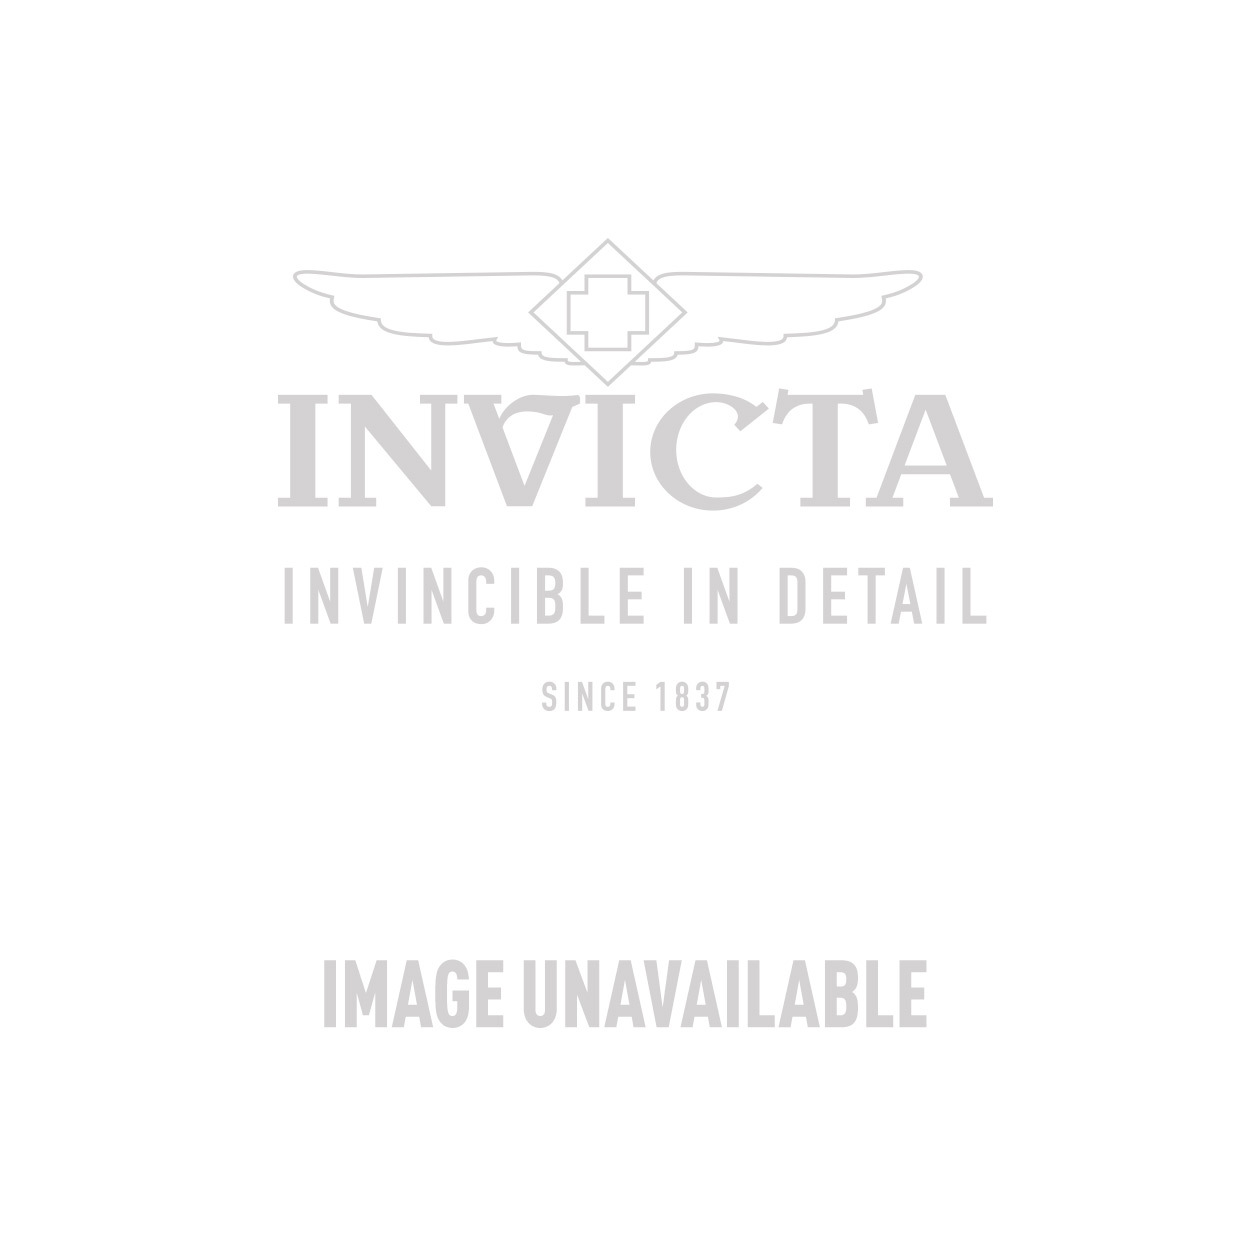 Invicta Angel Swiss Movement Quartz Watch - Stainless Steel case with Steel, White tone Plastic, Metal band - Model 18867